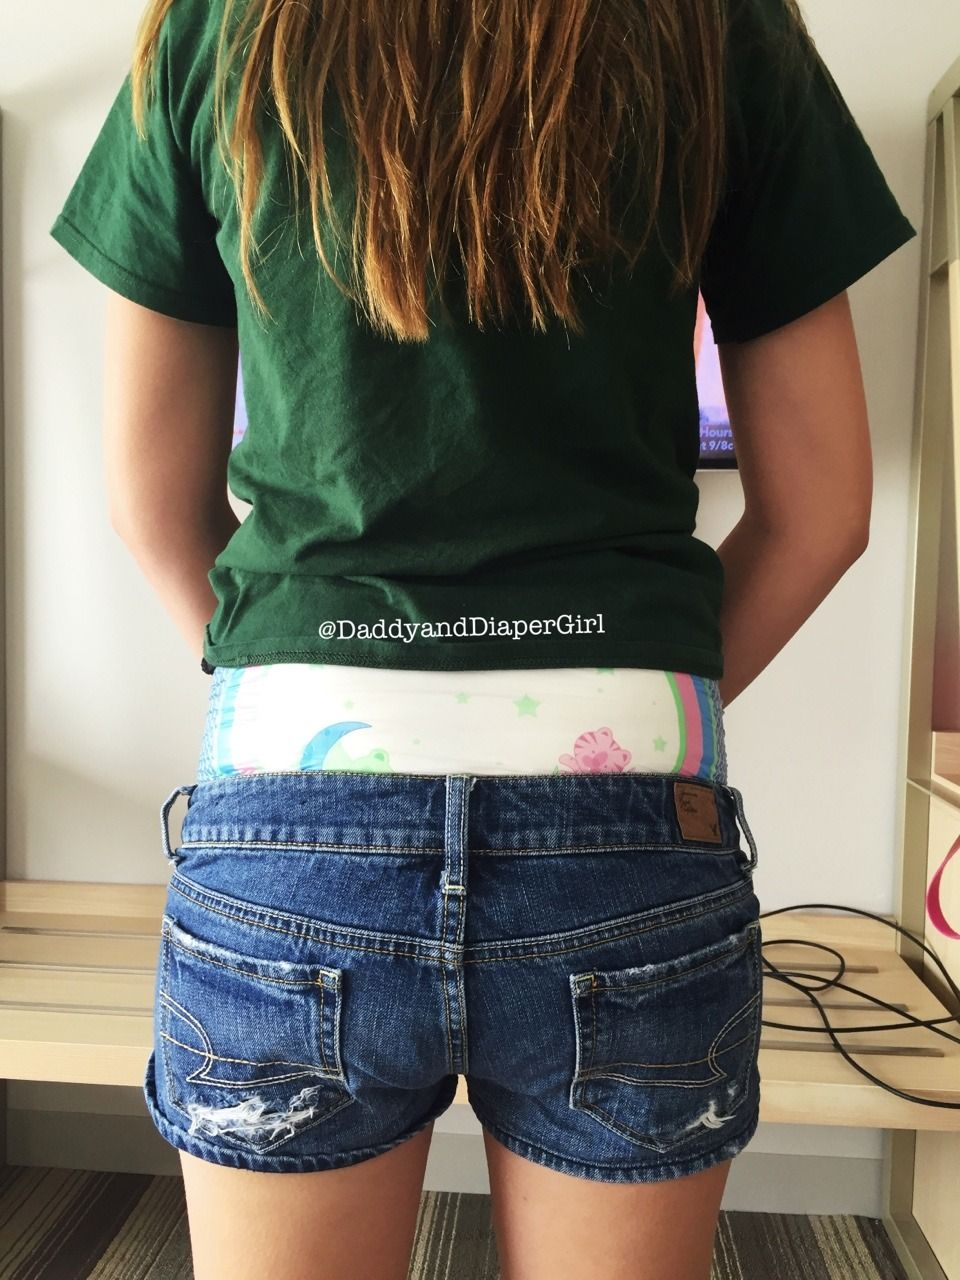 Abdl video chat